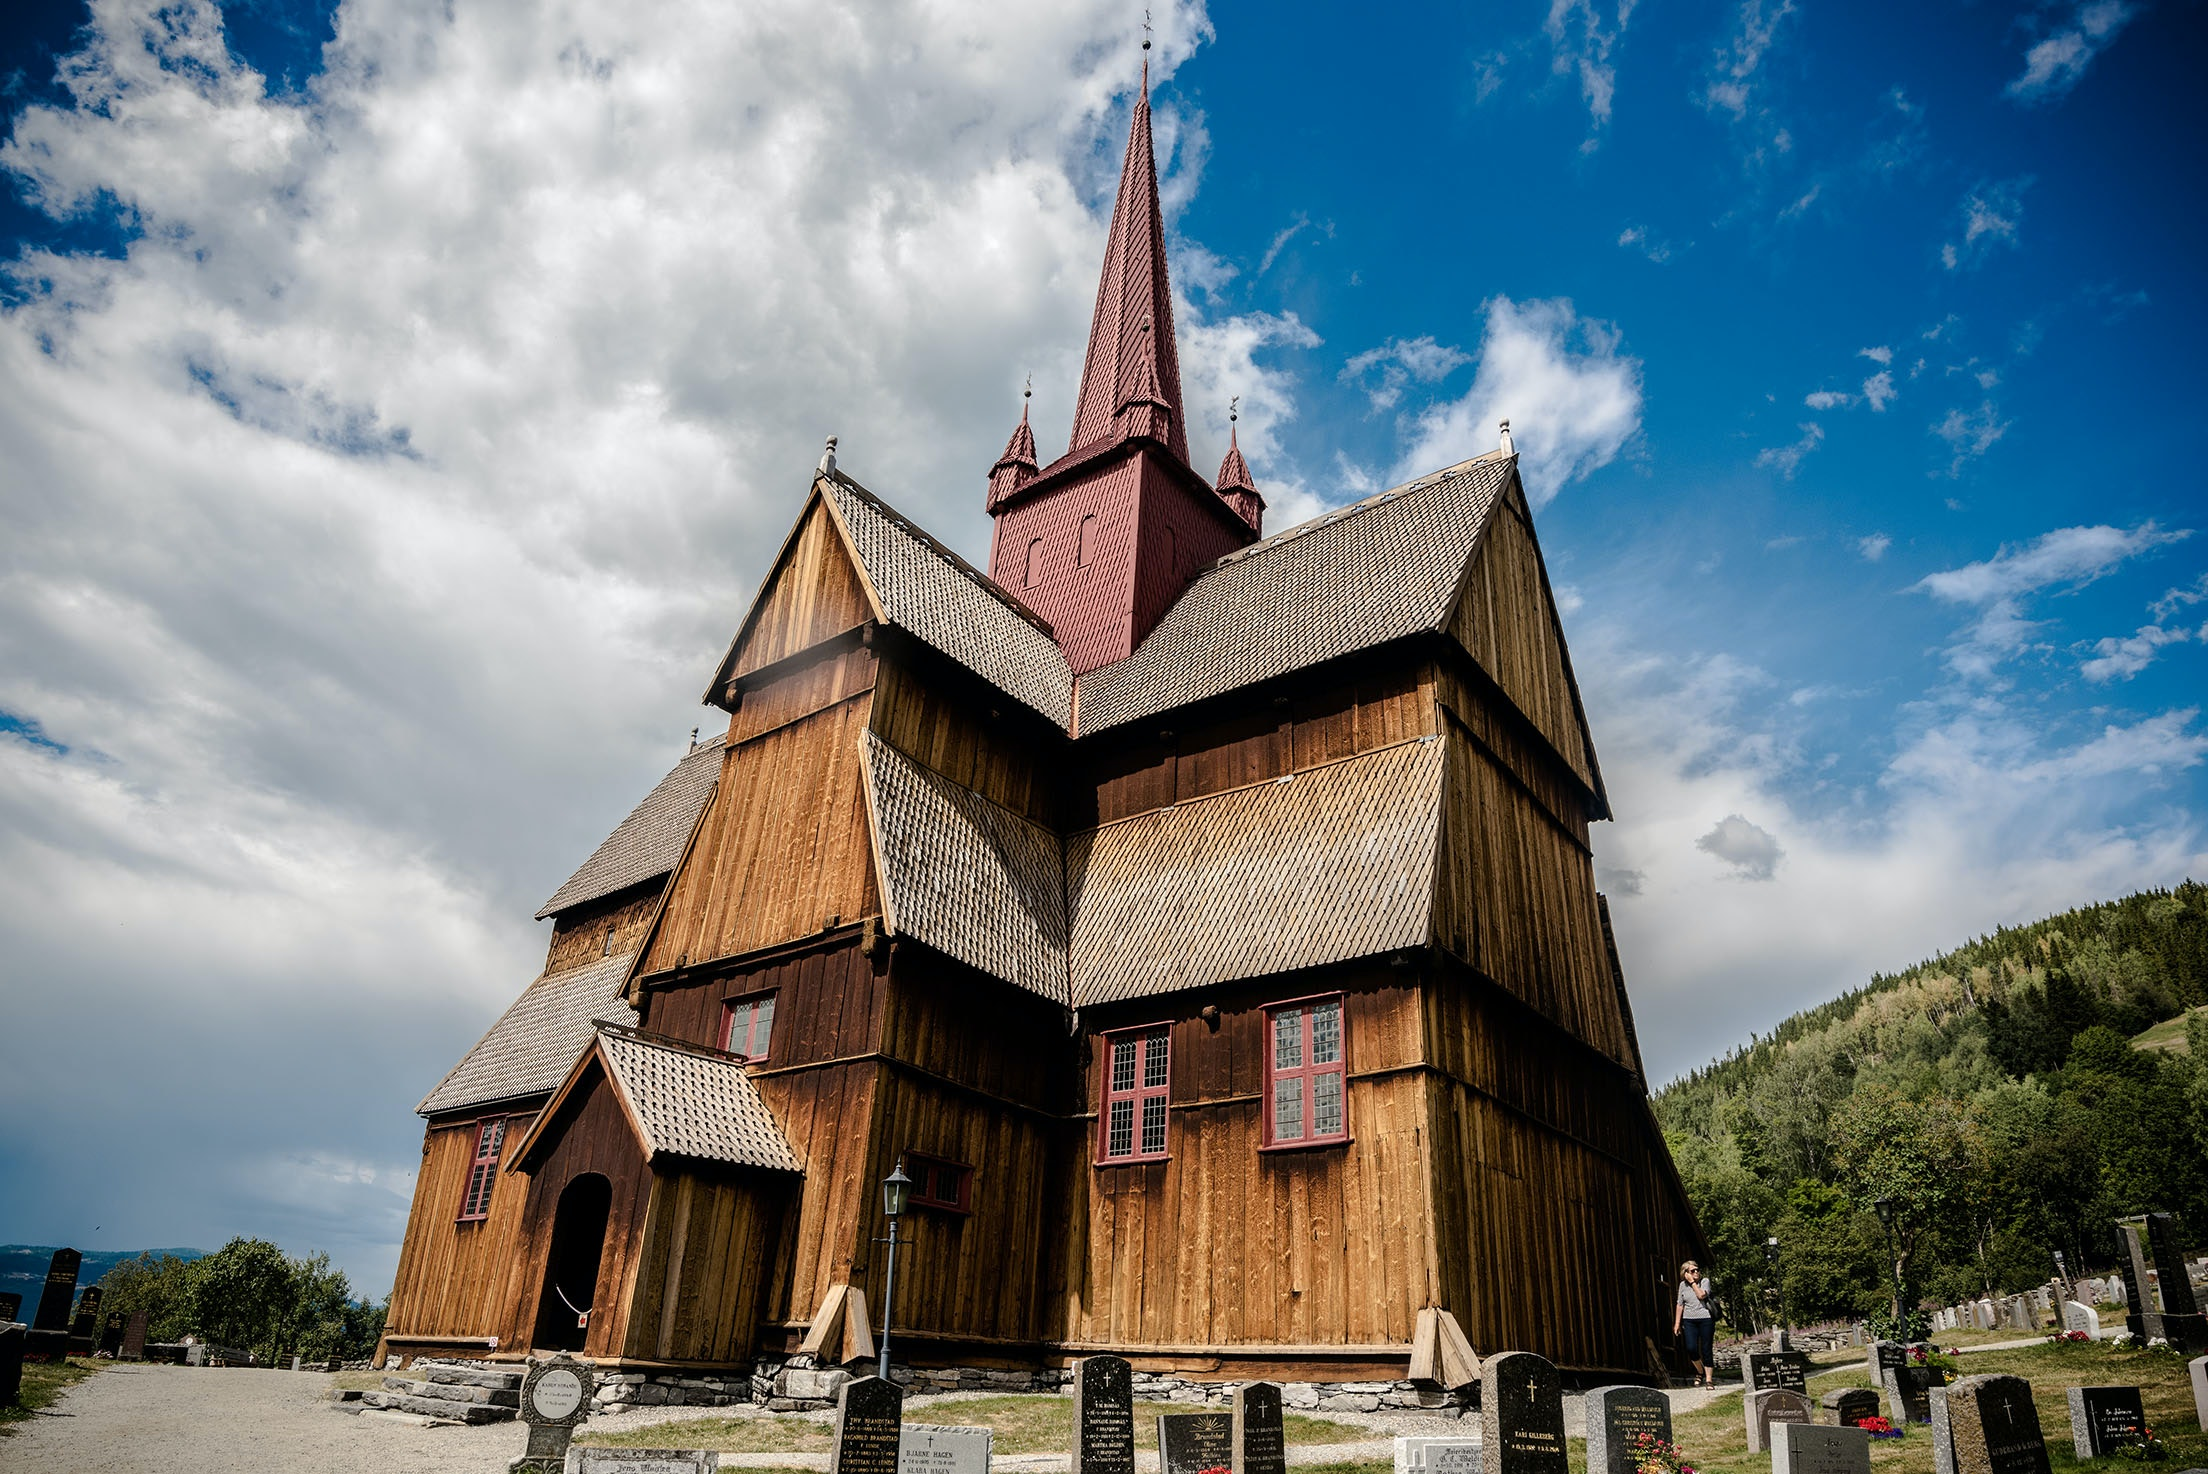 At the time of their construction in the Middle Ages, distinct, wooden stave churches were some of the most elaborate and technologically advanced structures in the region.